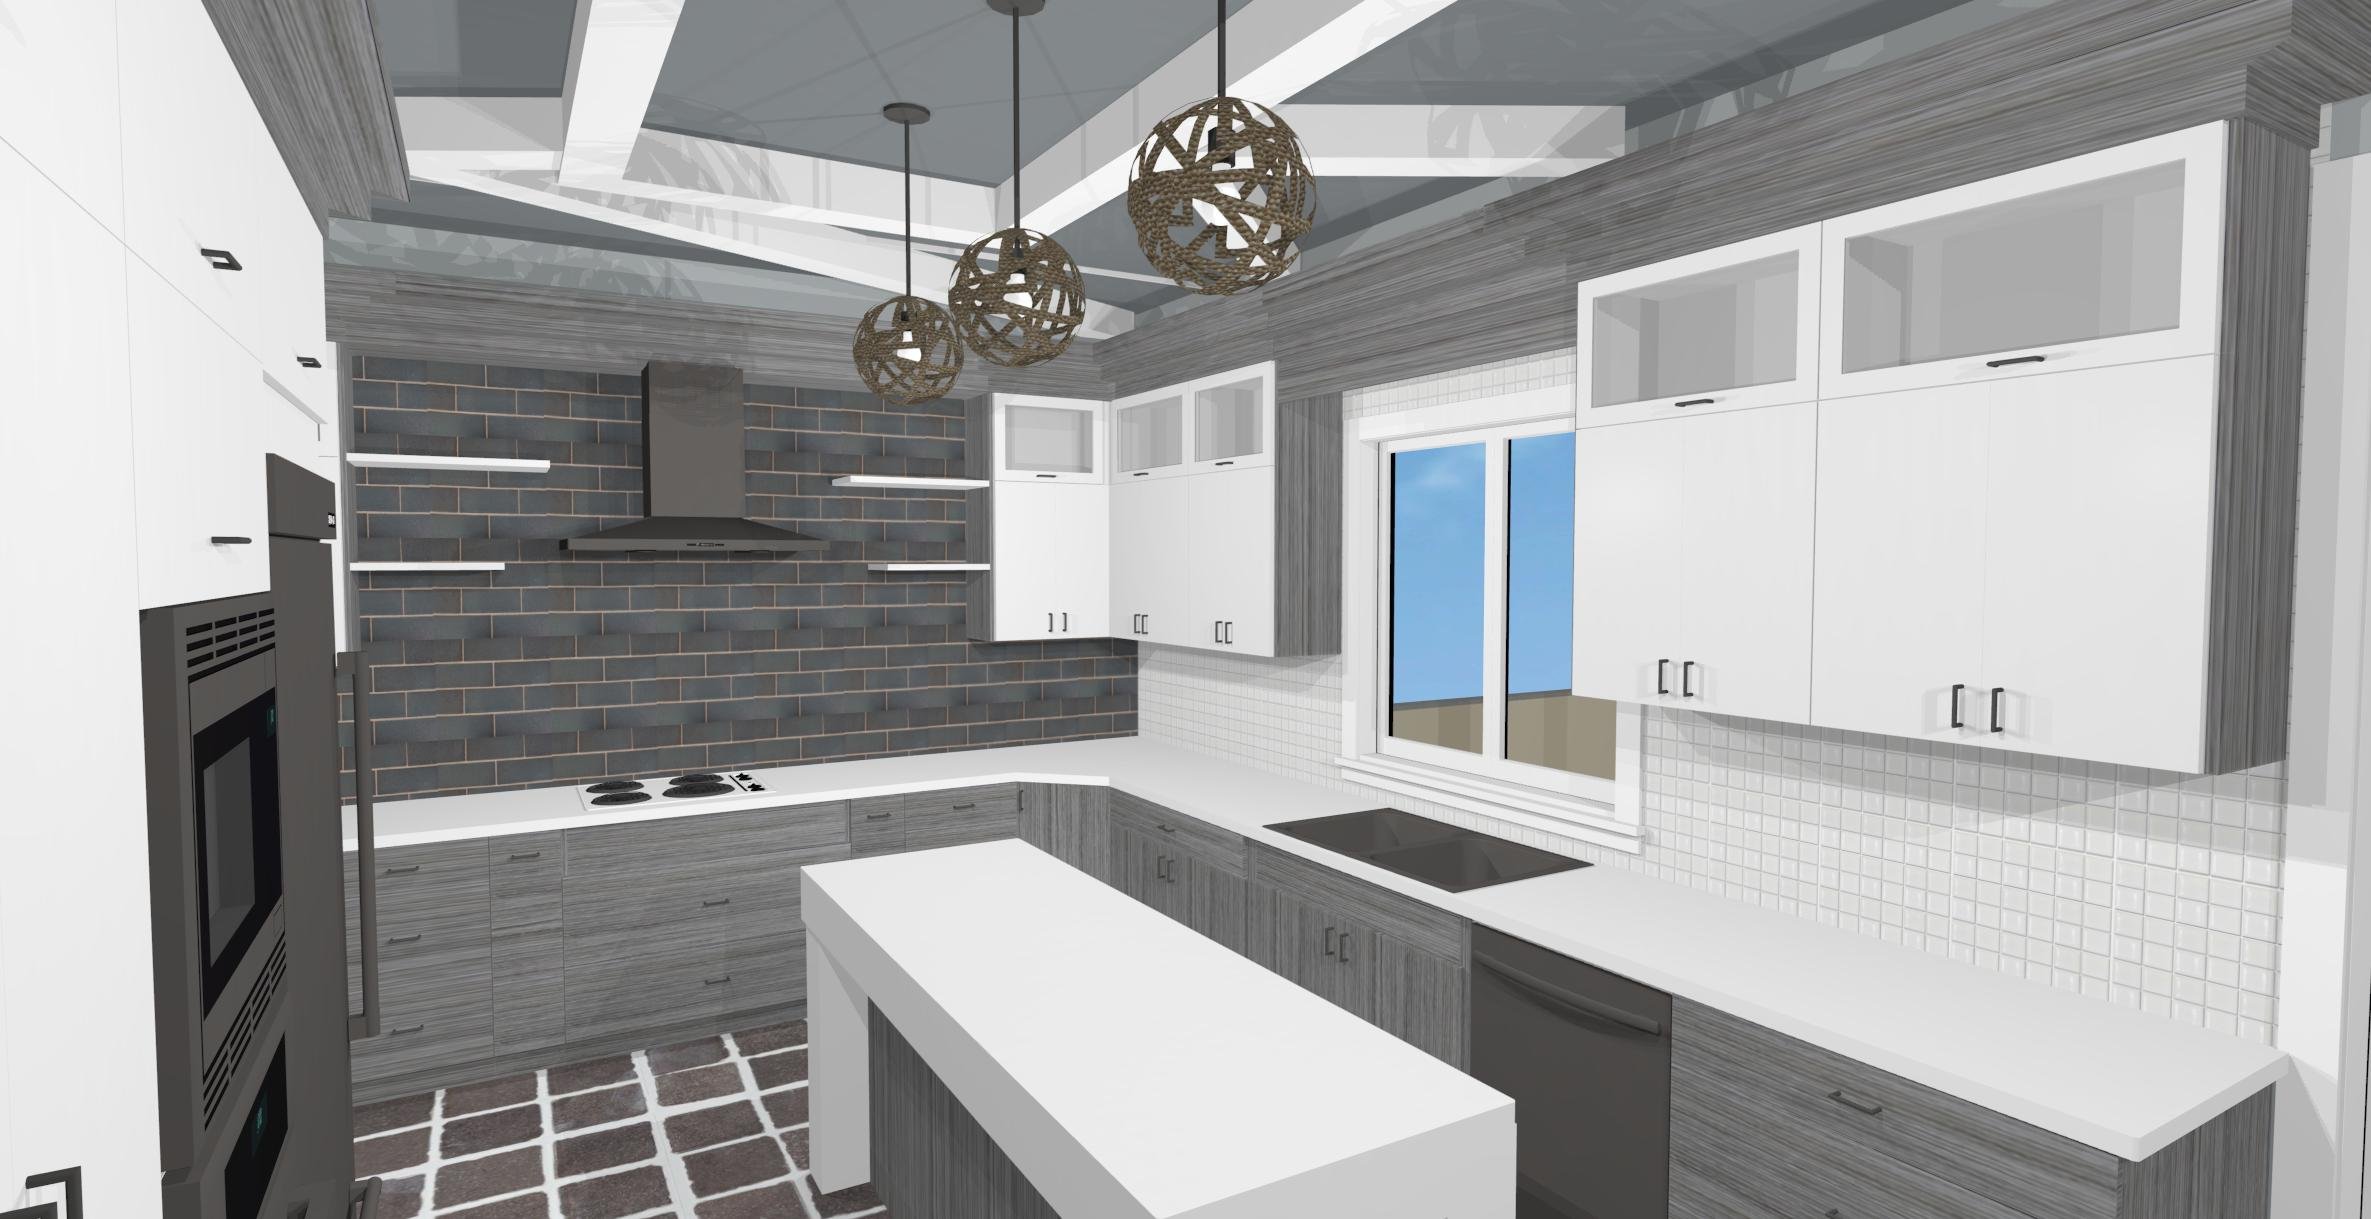 Projects archives sweet home 3d designs for Sweet home 3d designs